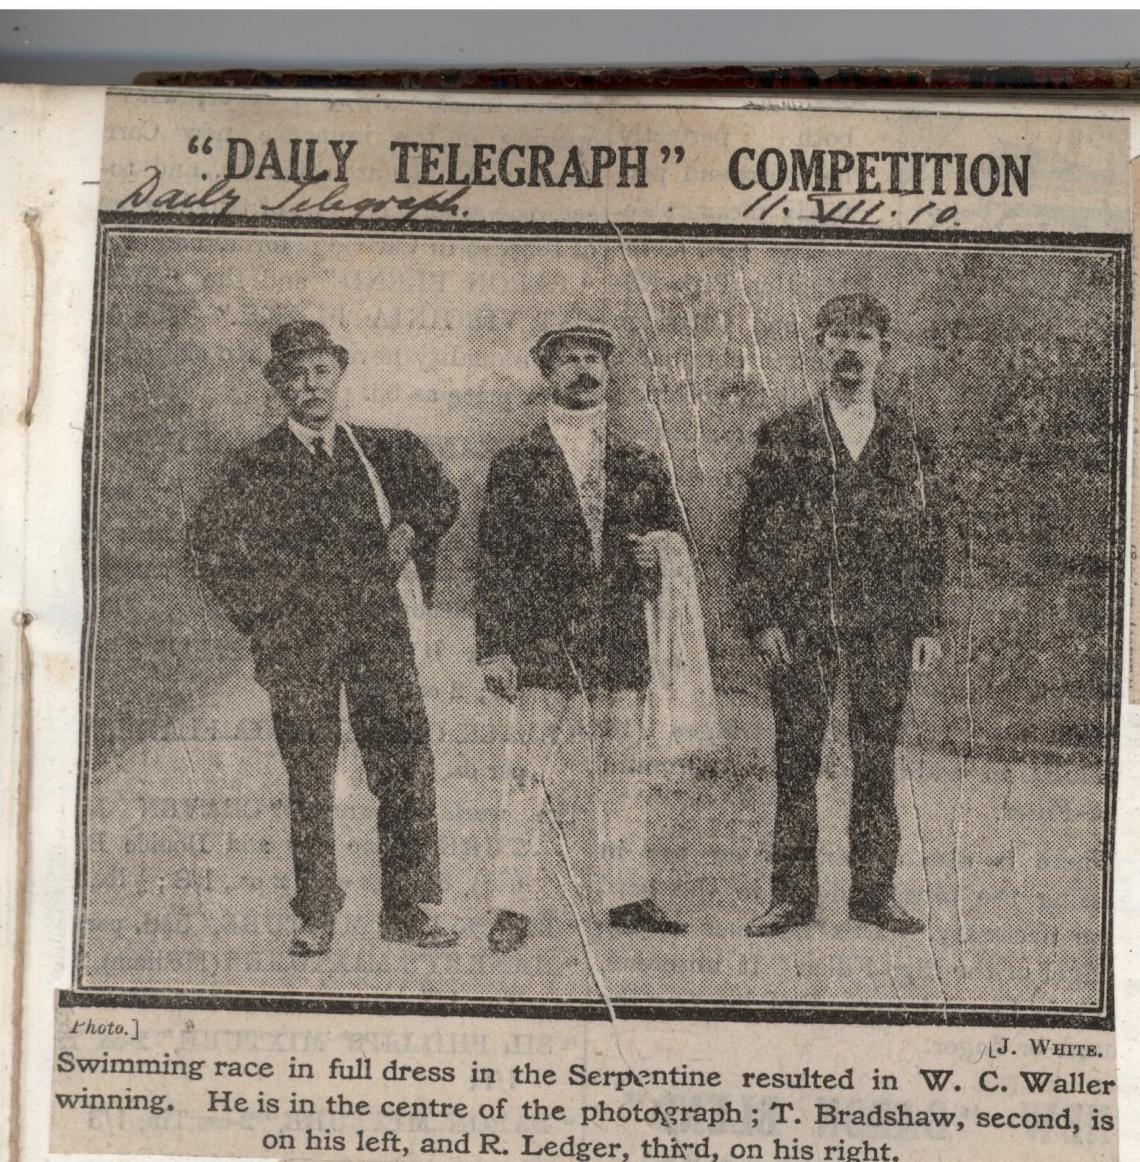 Tommy came second in the 1910 All Clothes Race